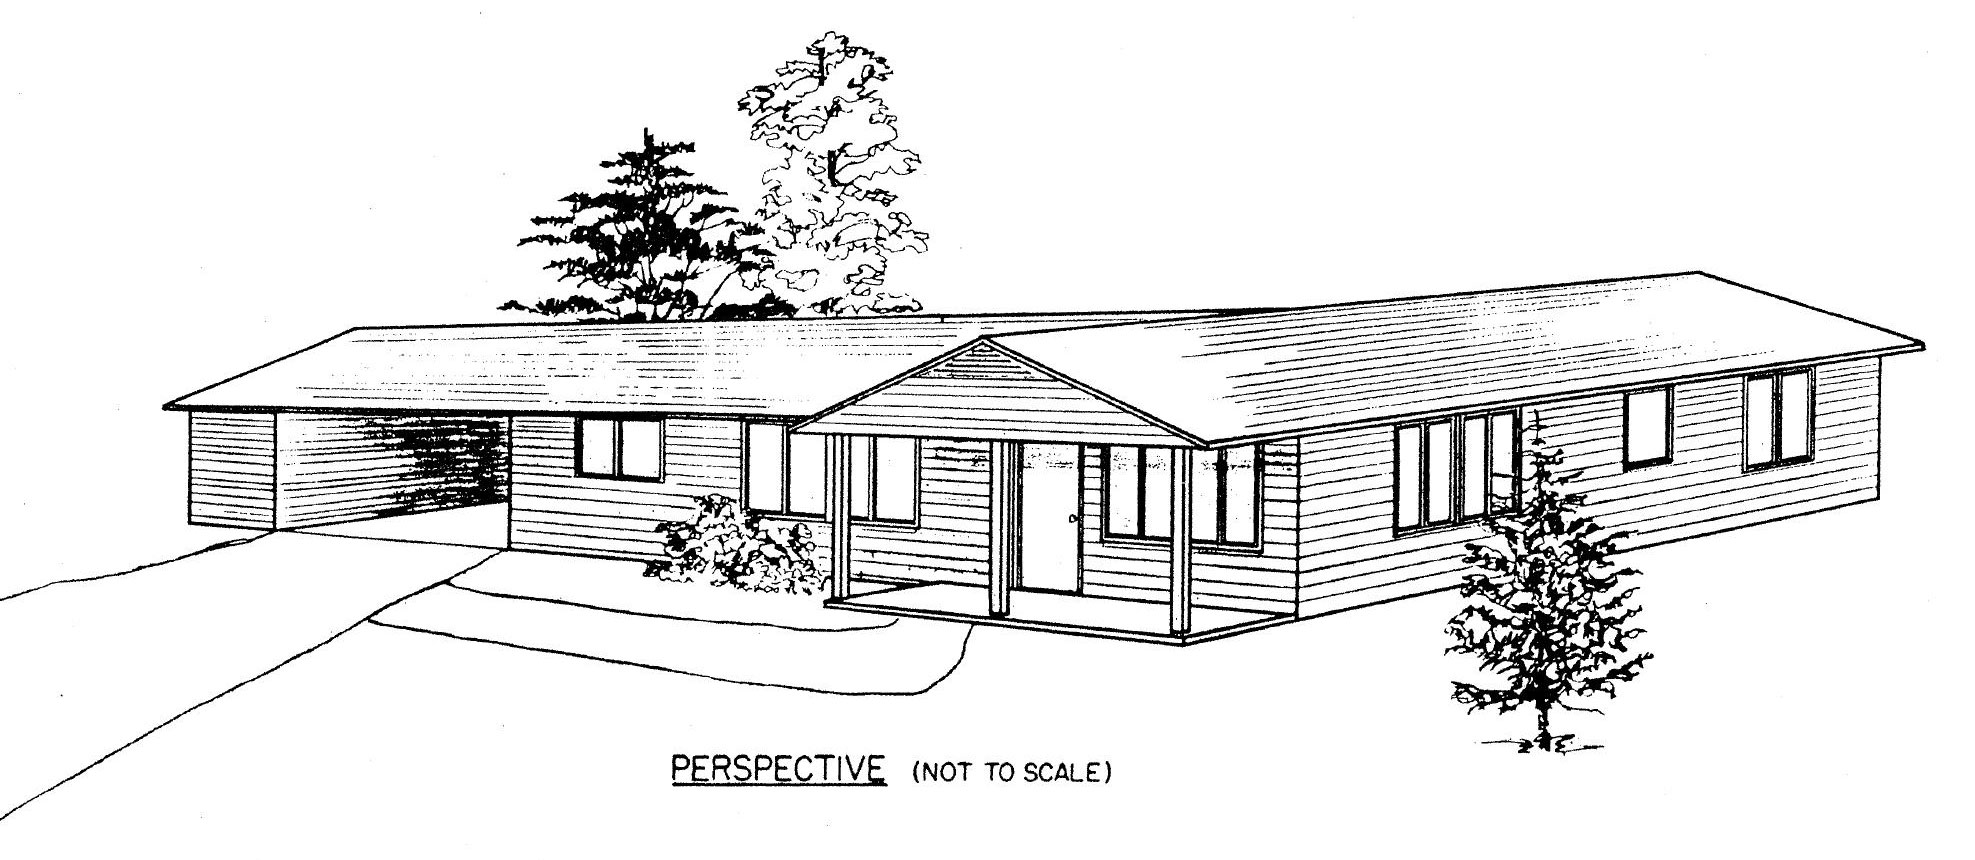 Ranch style house clipart images for Ranch house blueprints